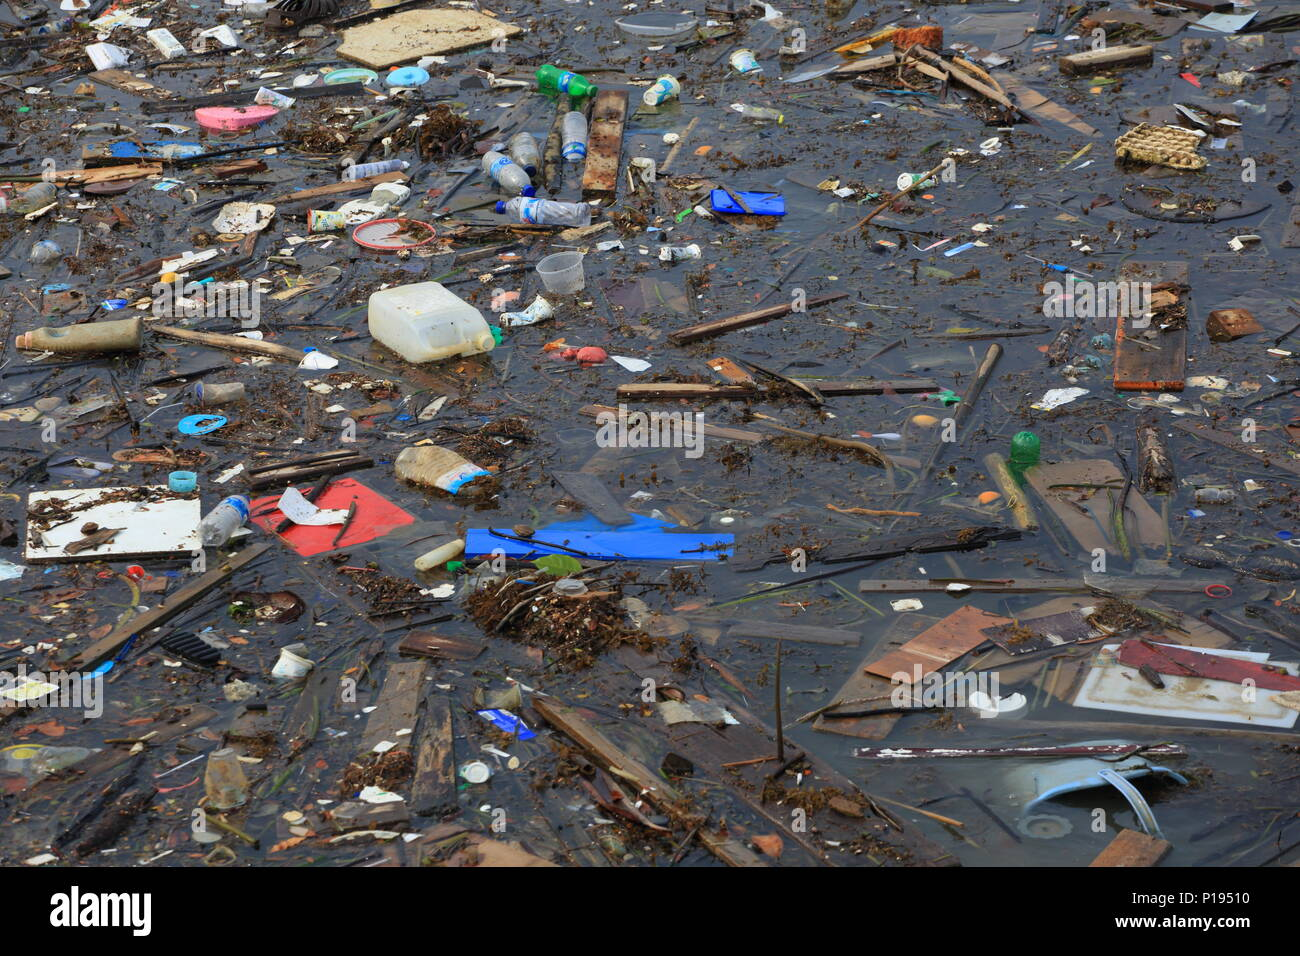 Plastic pollution on the water. - Stock Image